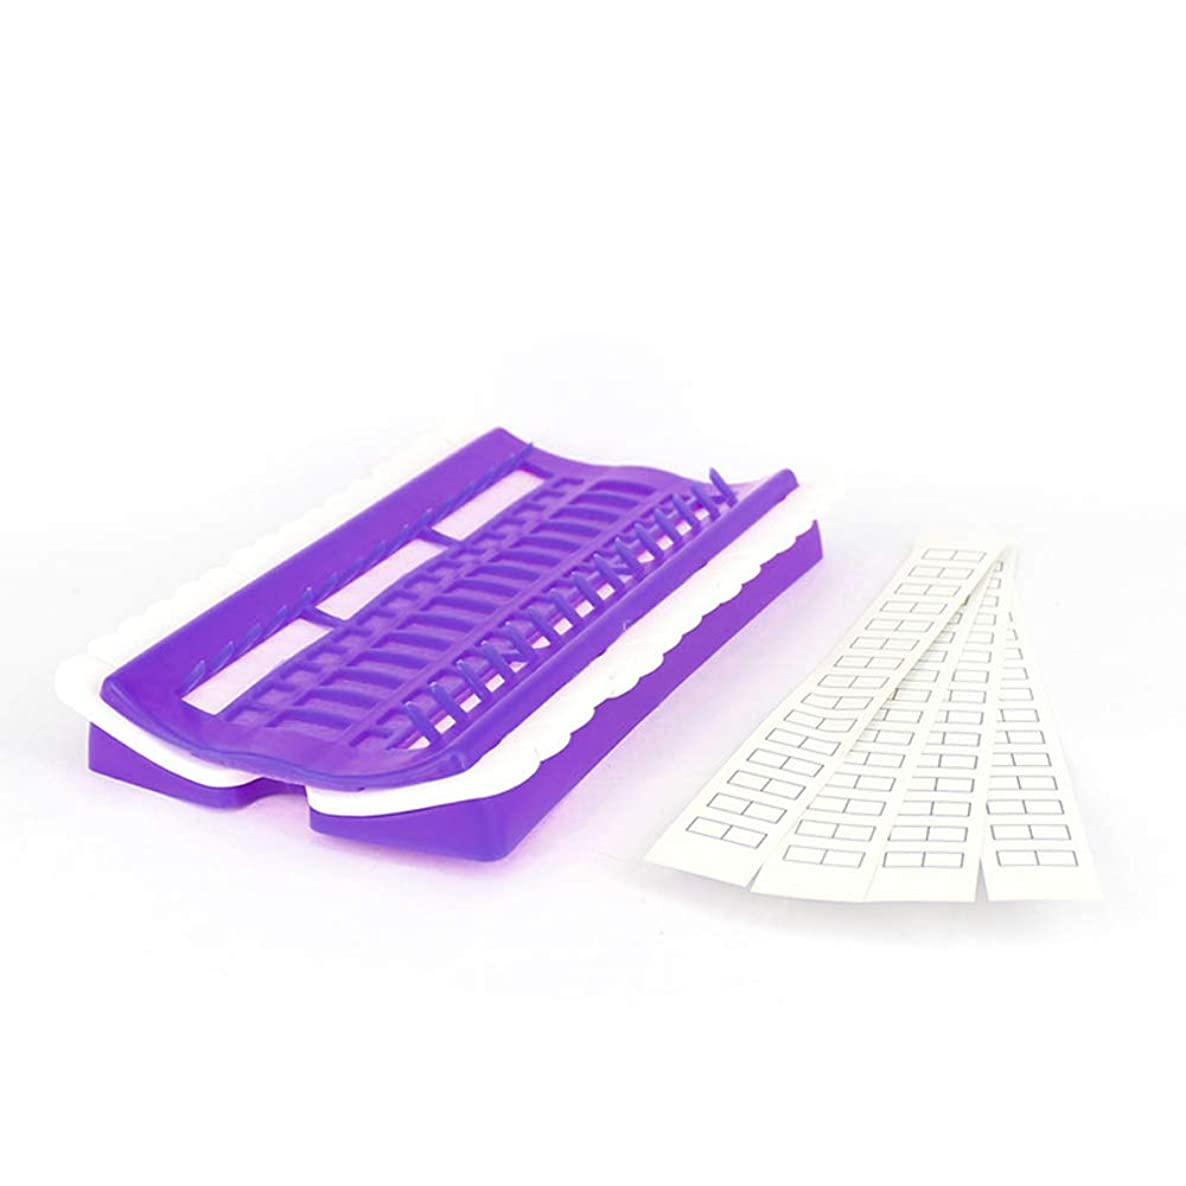 30 Positions Floss Organizer-Plastic Thread Organizers for Cross Stitch-Embroidery Kit Tool for Thread Sewing(Purple)